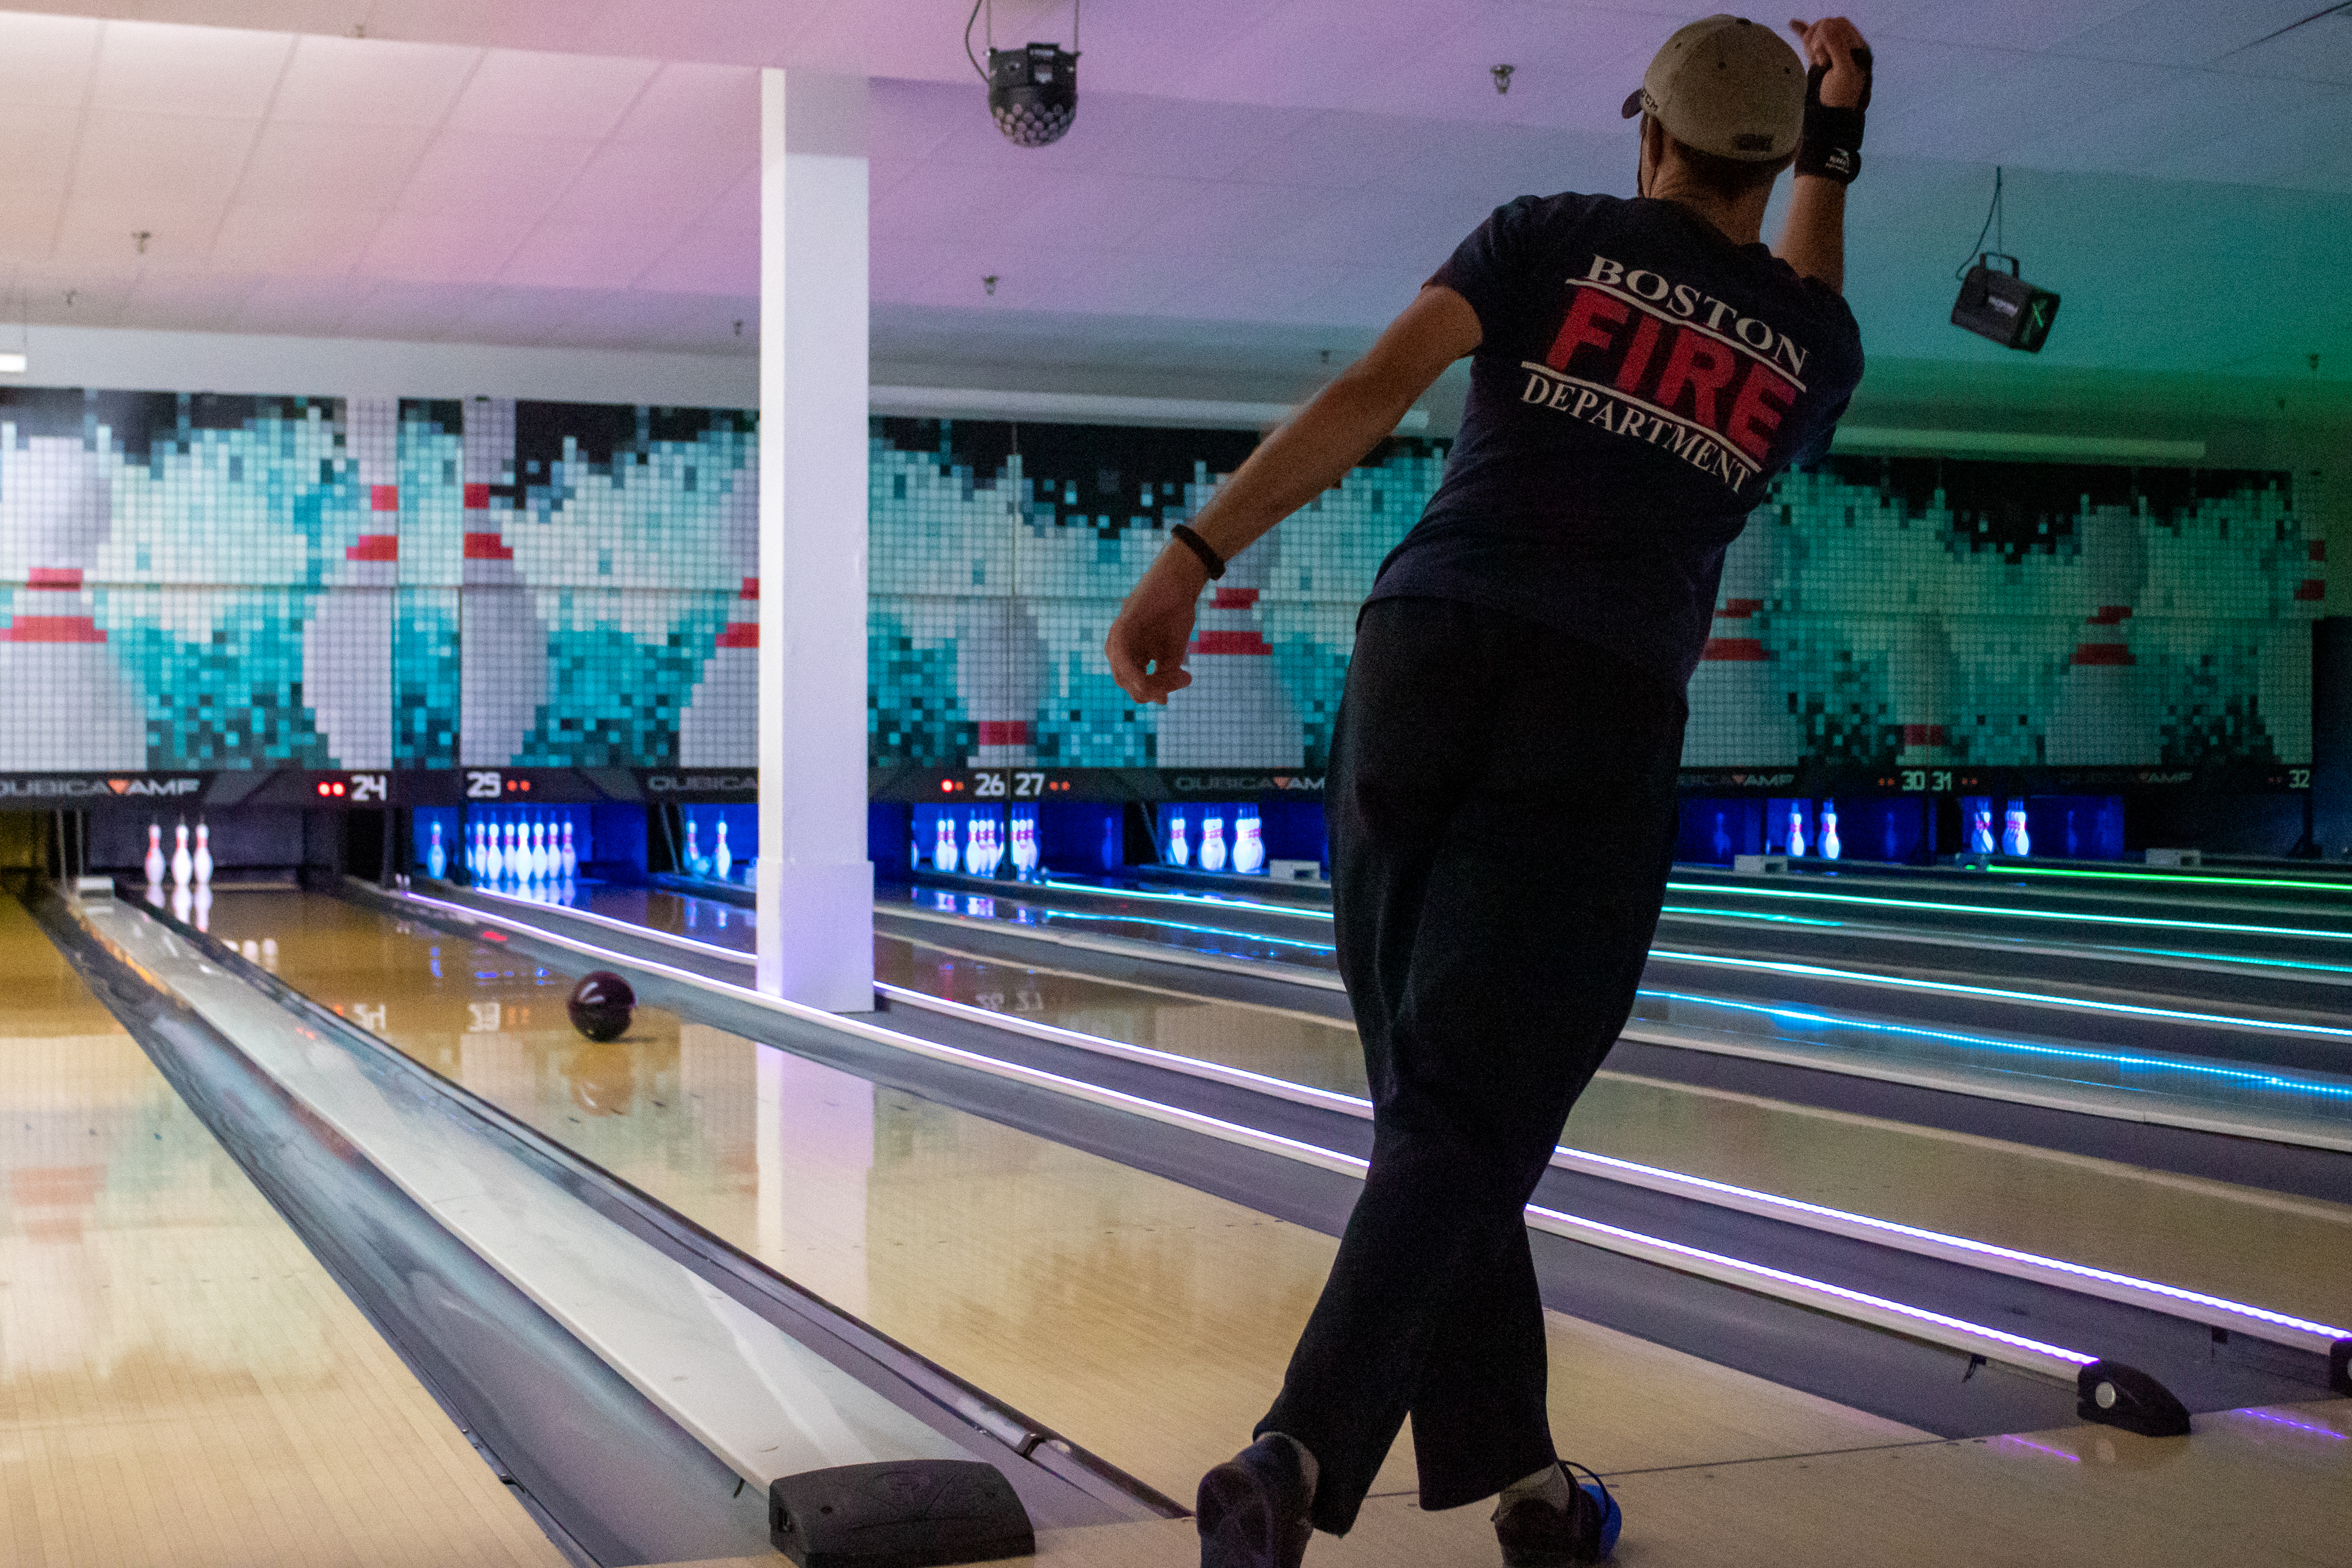 Bowling Photo (8 of 19).jpg